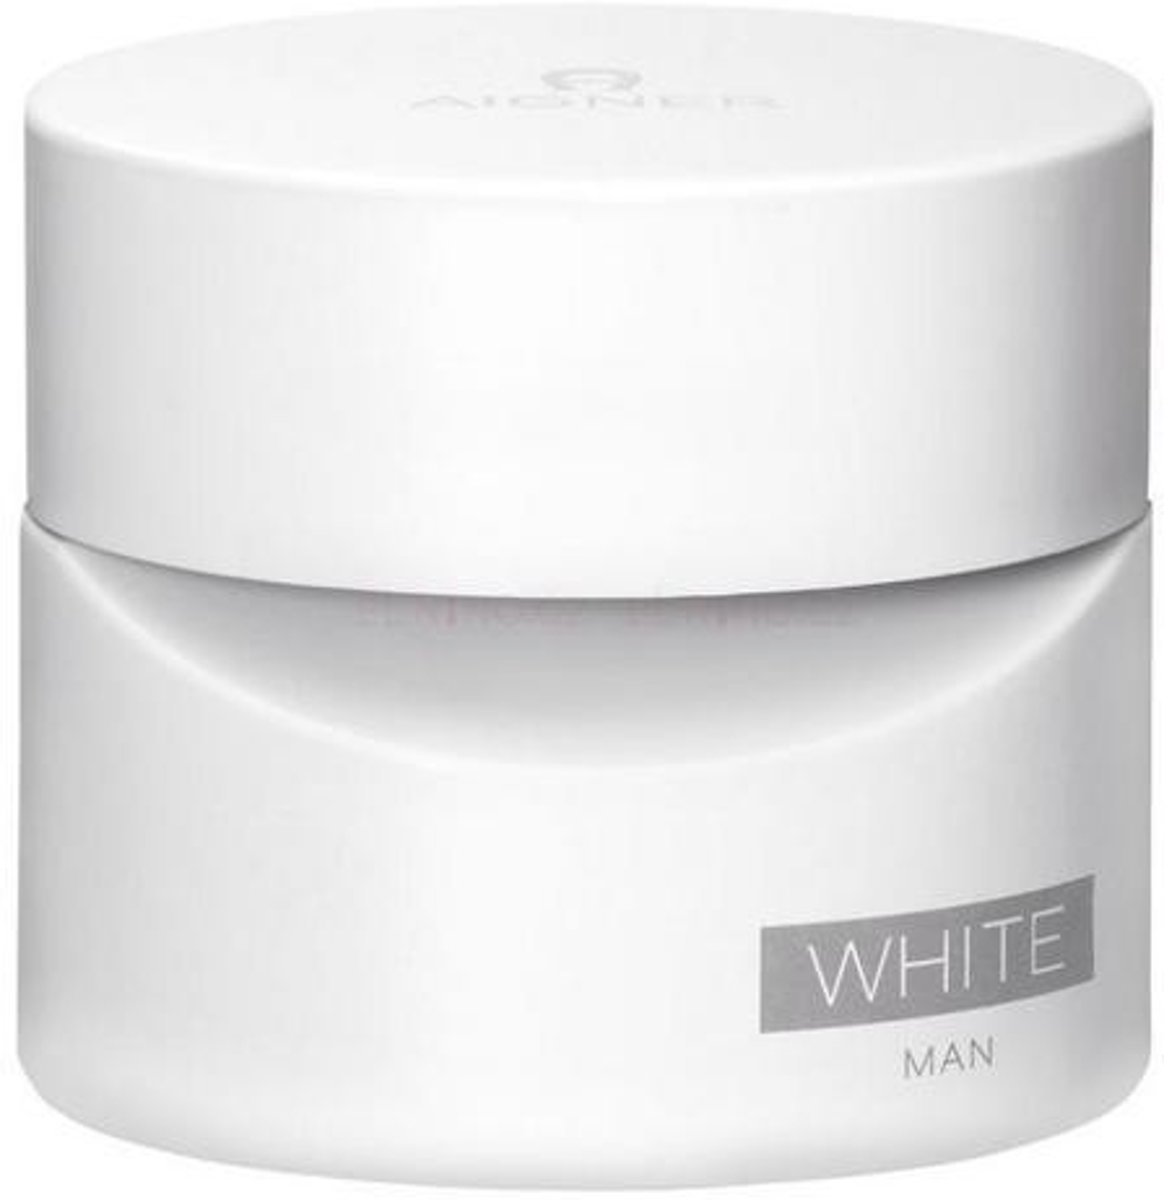 Aigner White Man - 125 ml - Eau De Toilette